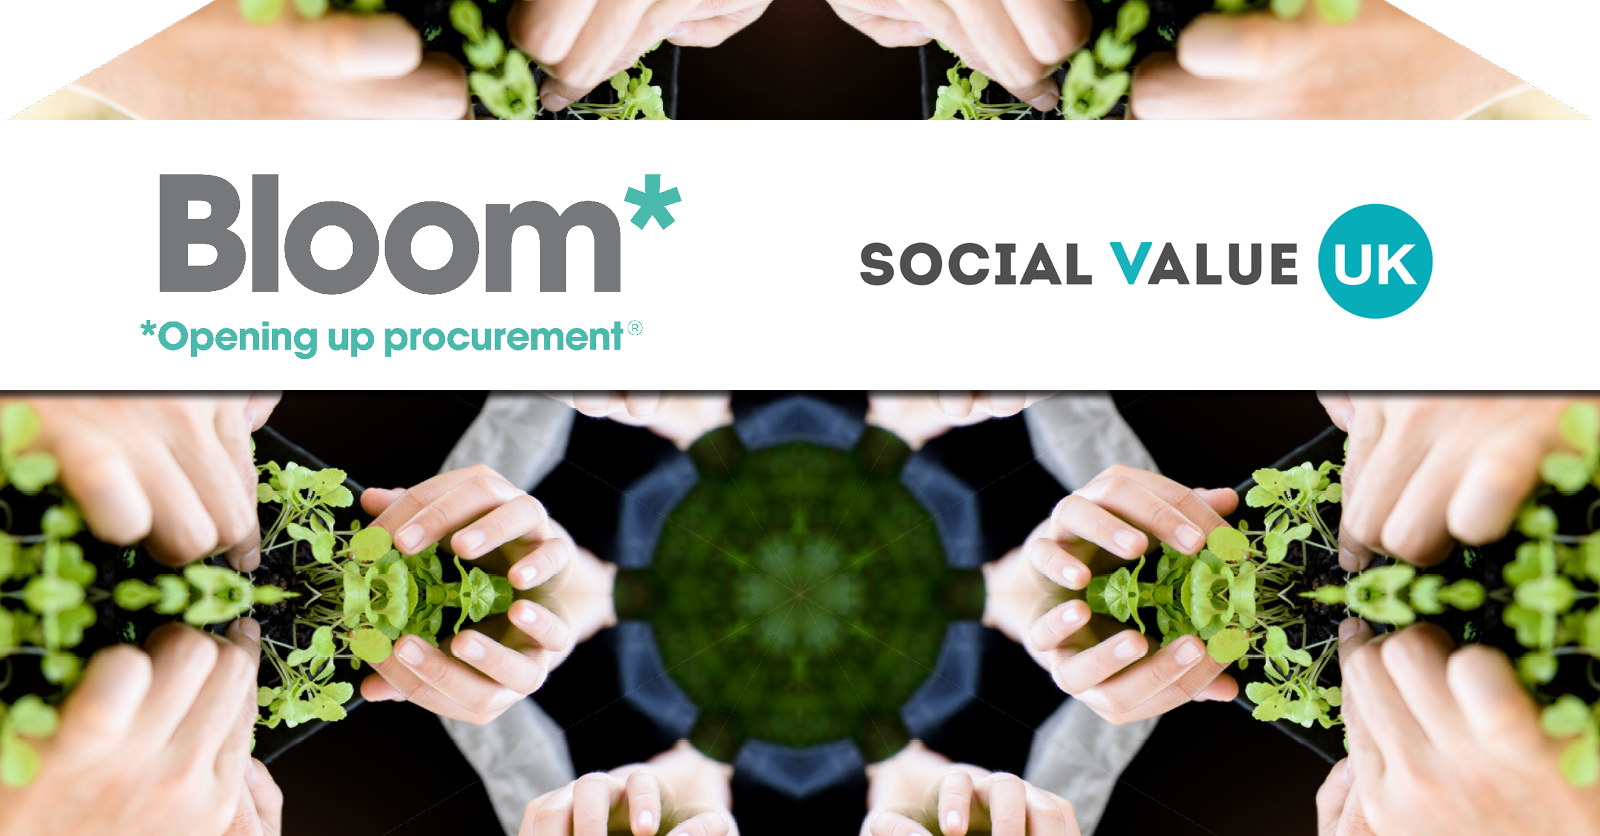 Bloom announced as Social Value UK Pioneer